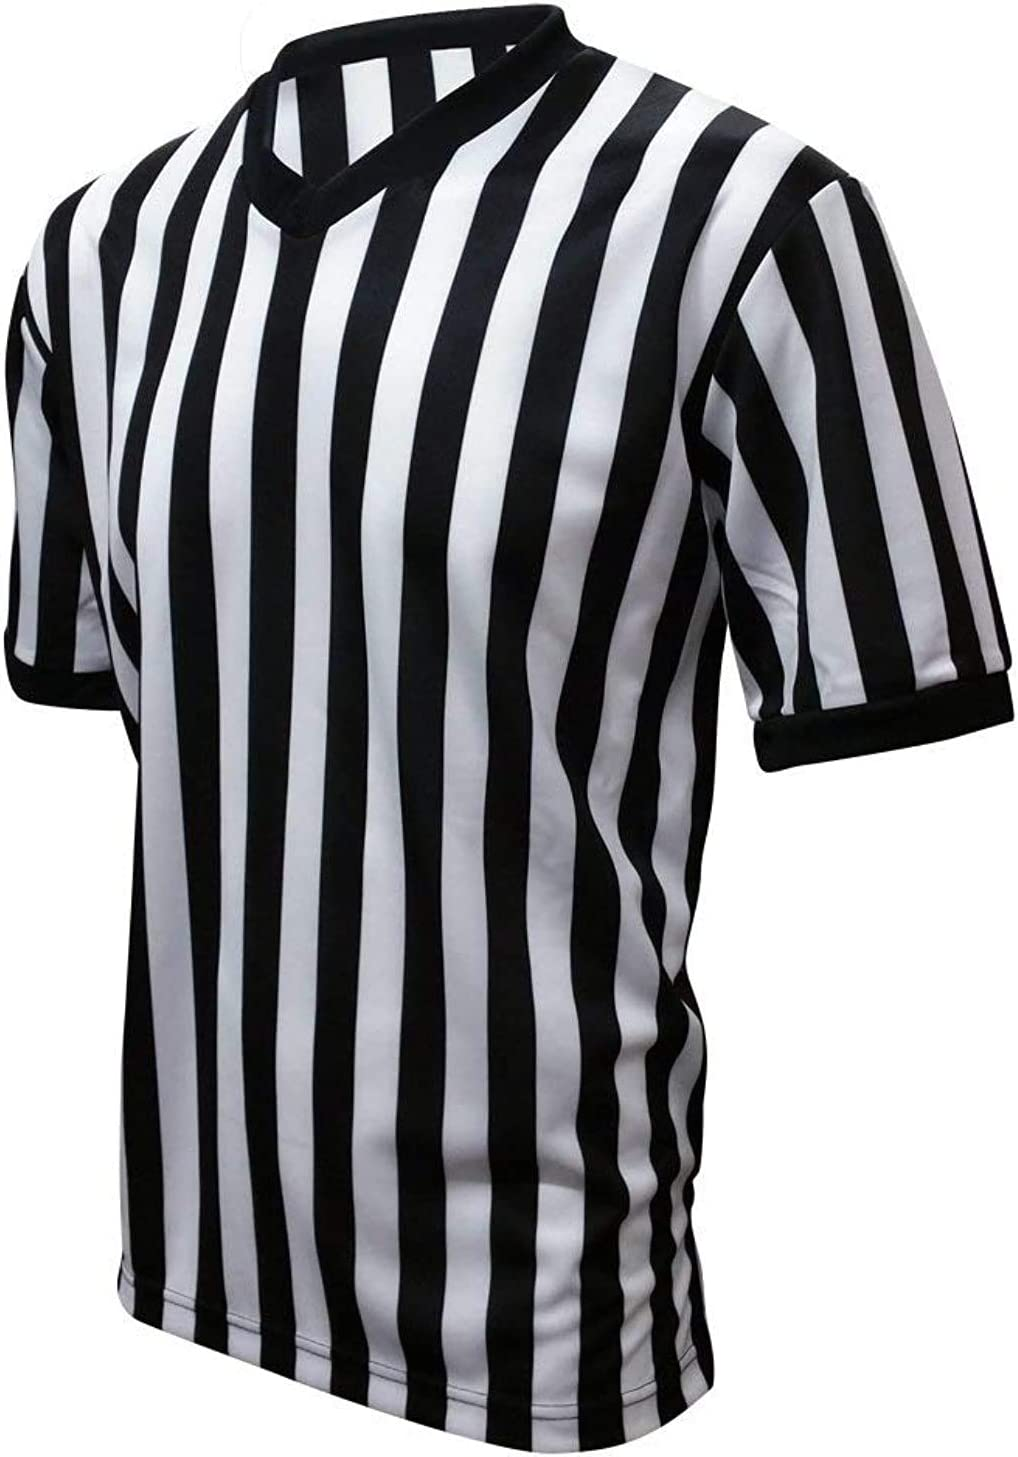 PRO FIT Official Referee Jersey V-Neck Shirt Officiating Jersey Basketball Football: Sports & Outdoors